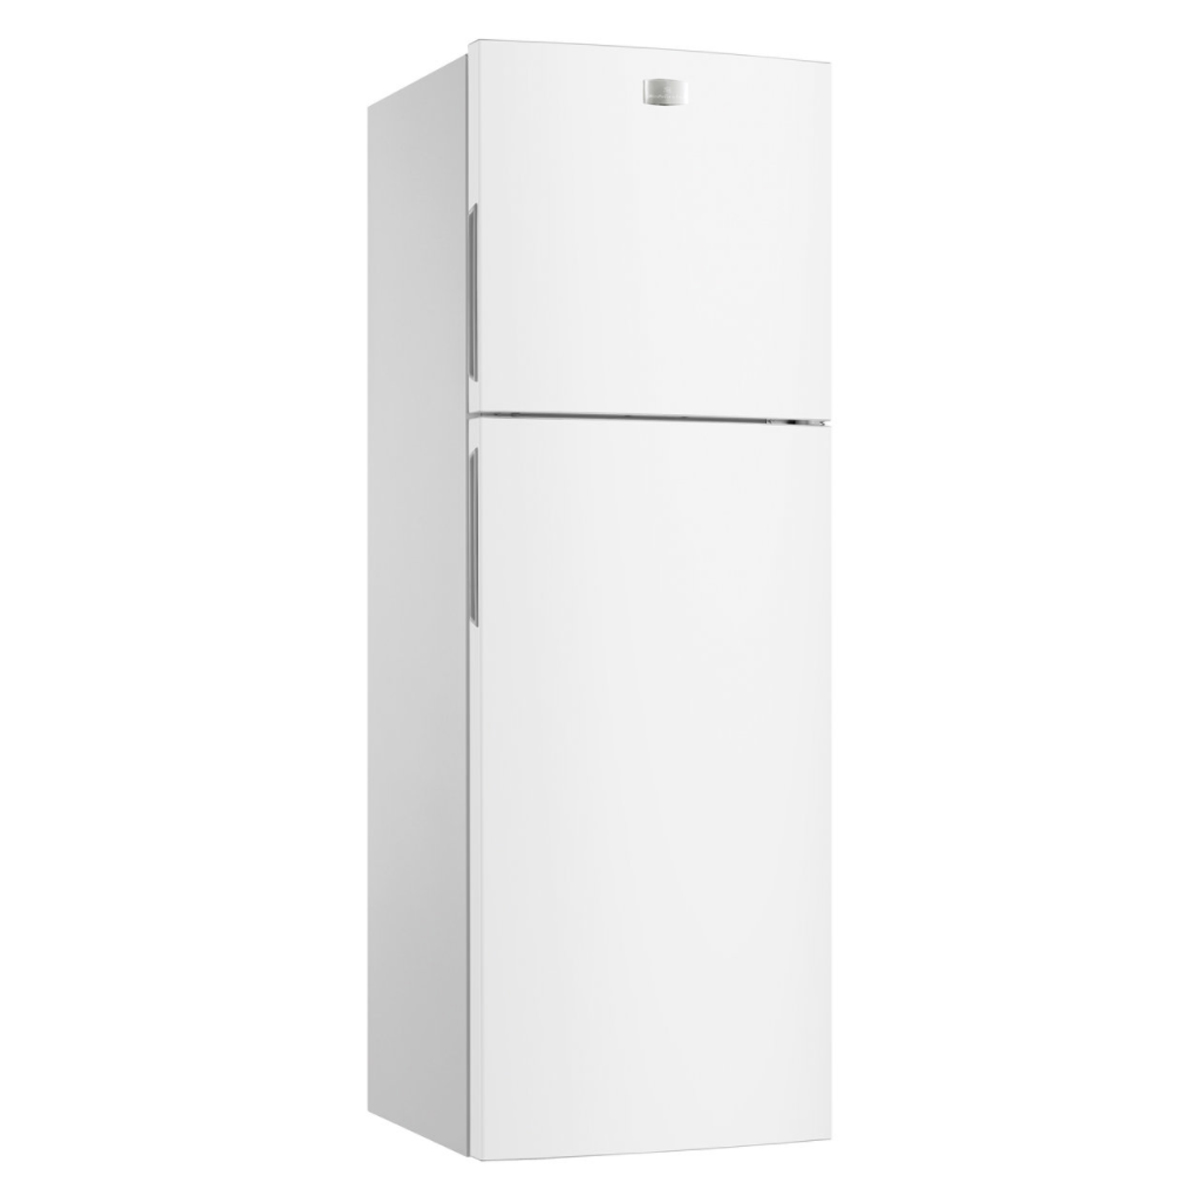 Kelvinator KTB2802WA 275L Top Mount Fridge 56305